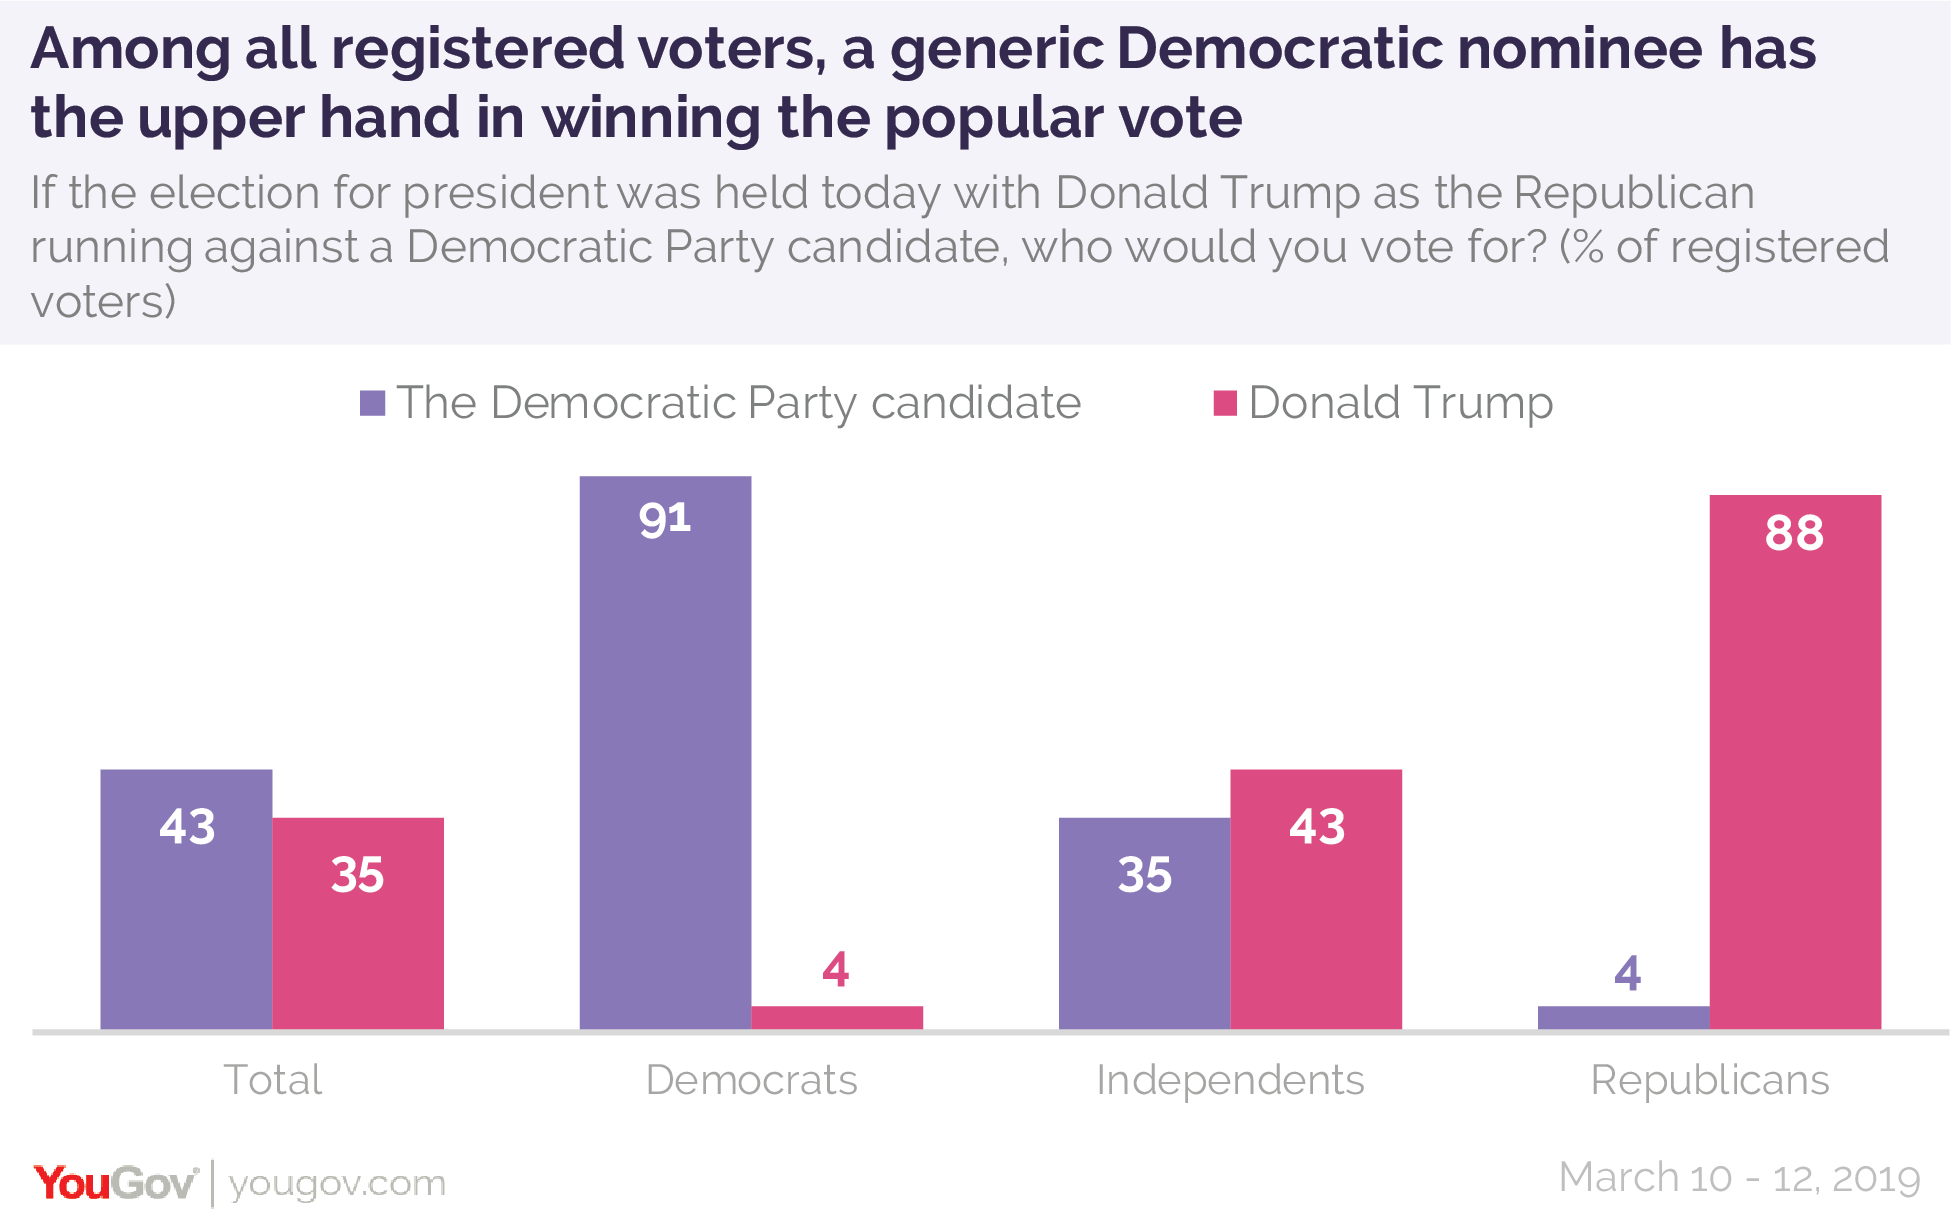 Among all registered voters, a generic Democratic nominee has the upper hand in winning the popular vote